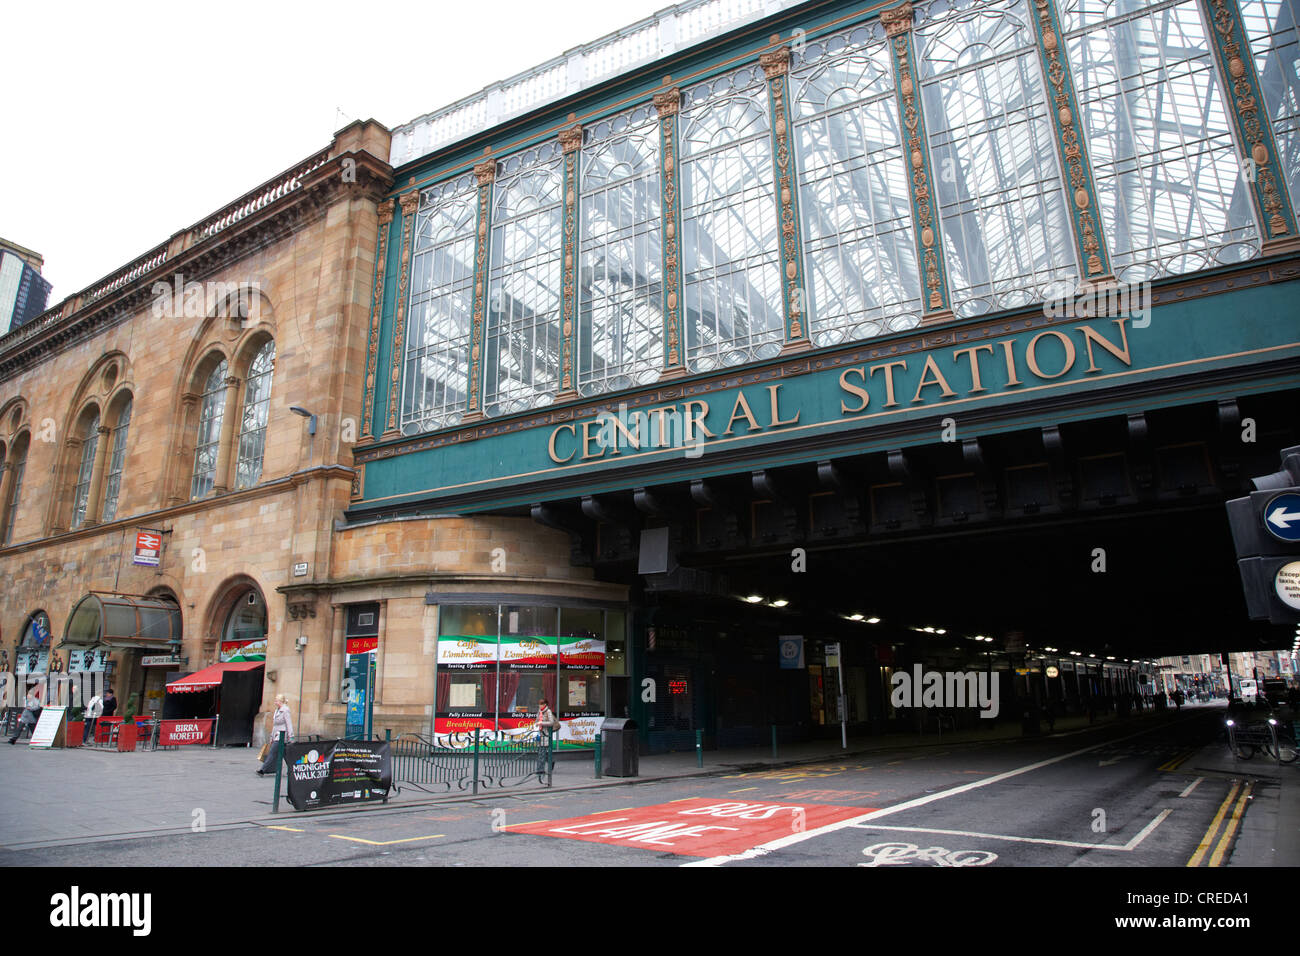 Hielanman's umbrella glass walled railway bridge for glasgow central station scotland uk - Stock Image